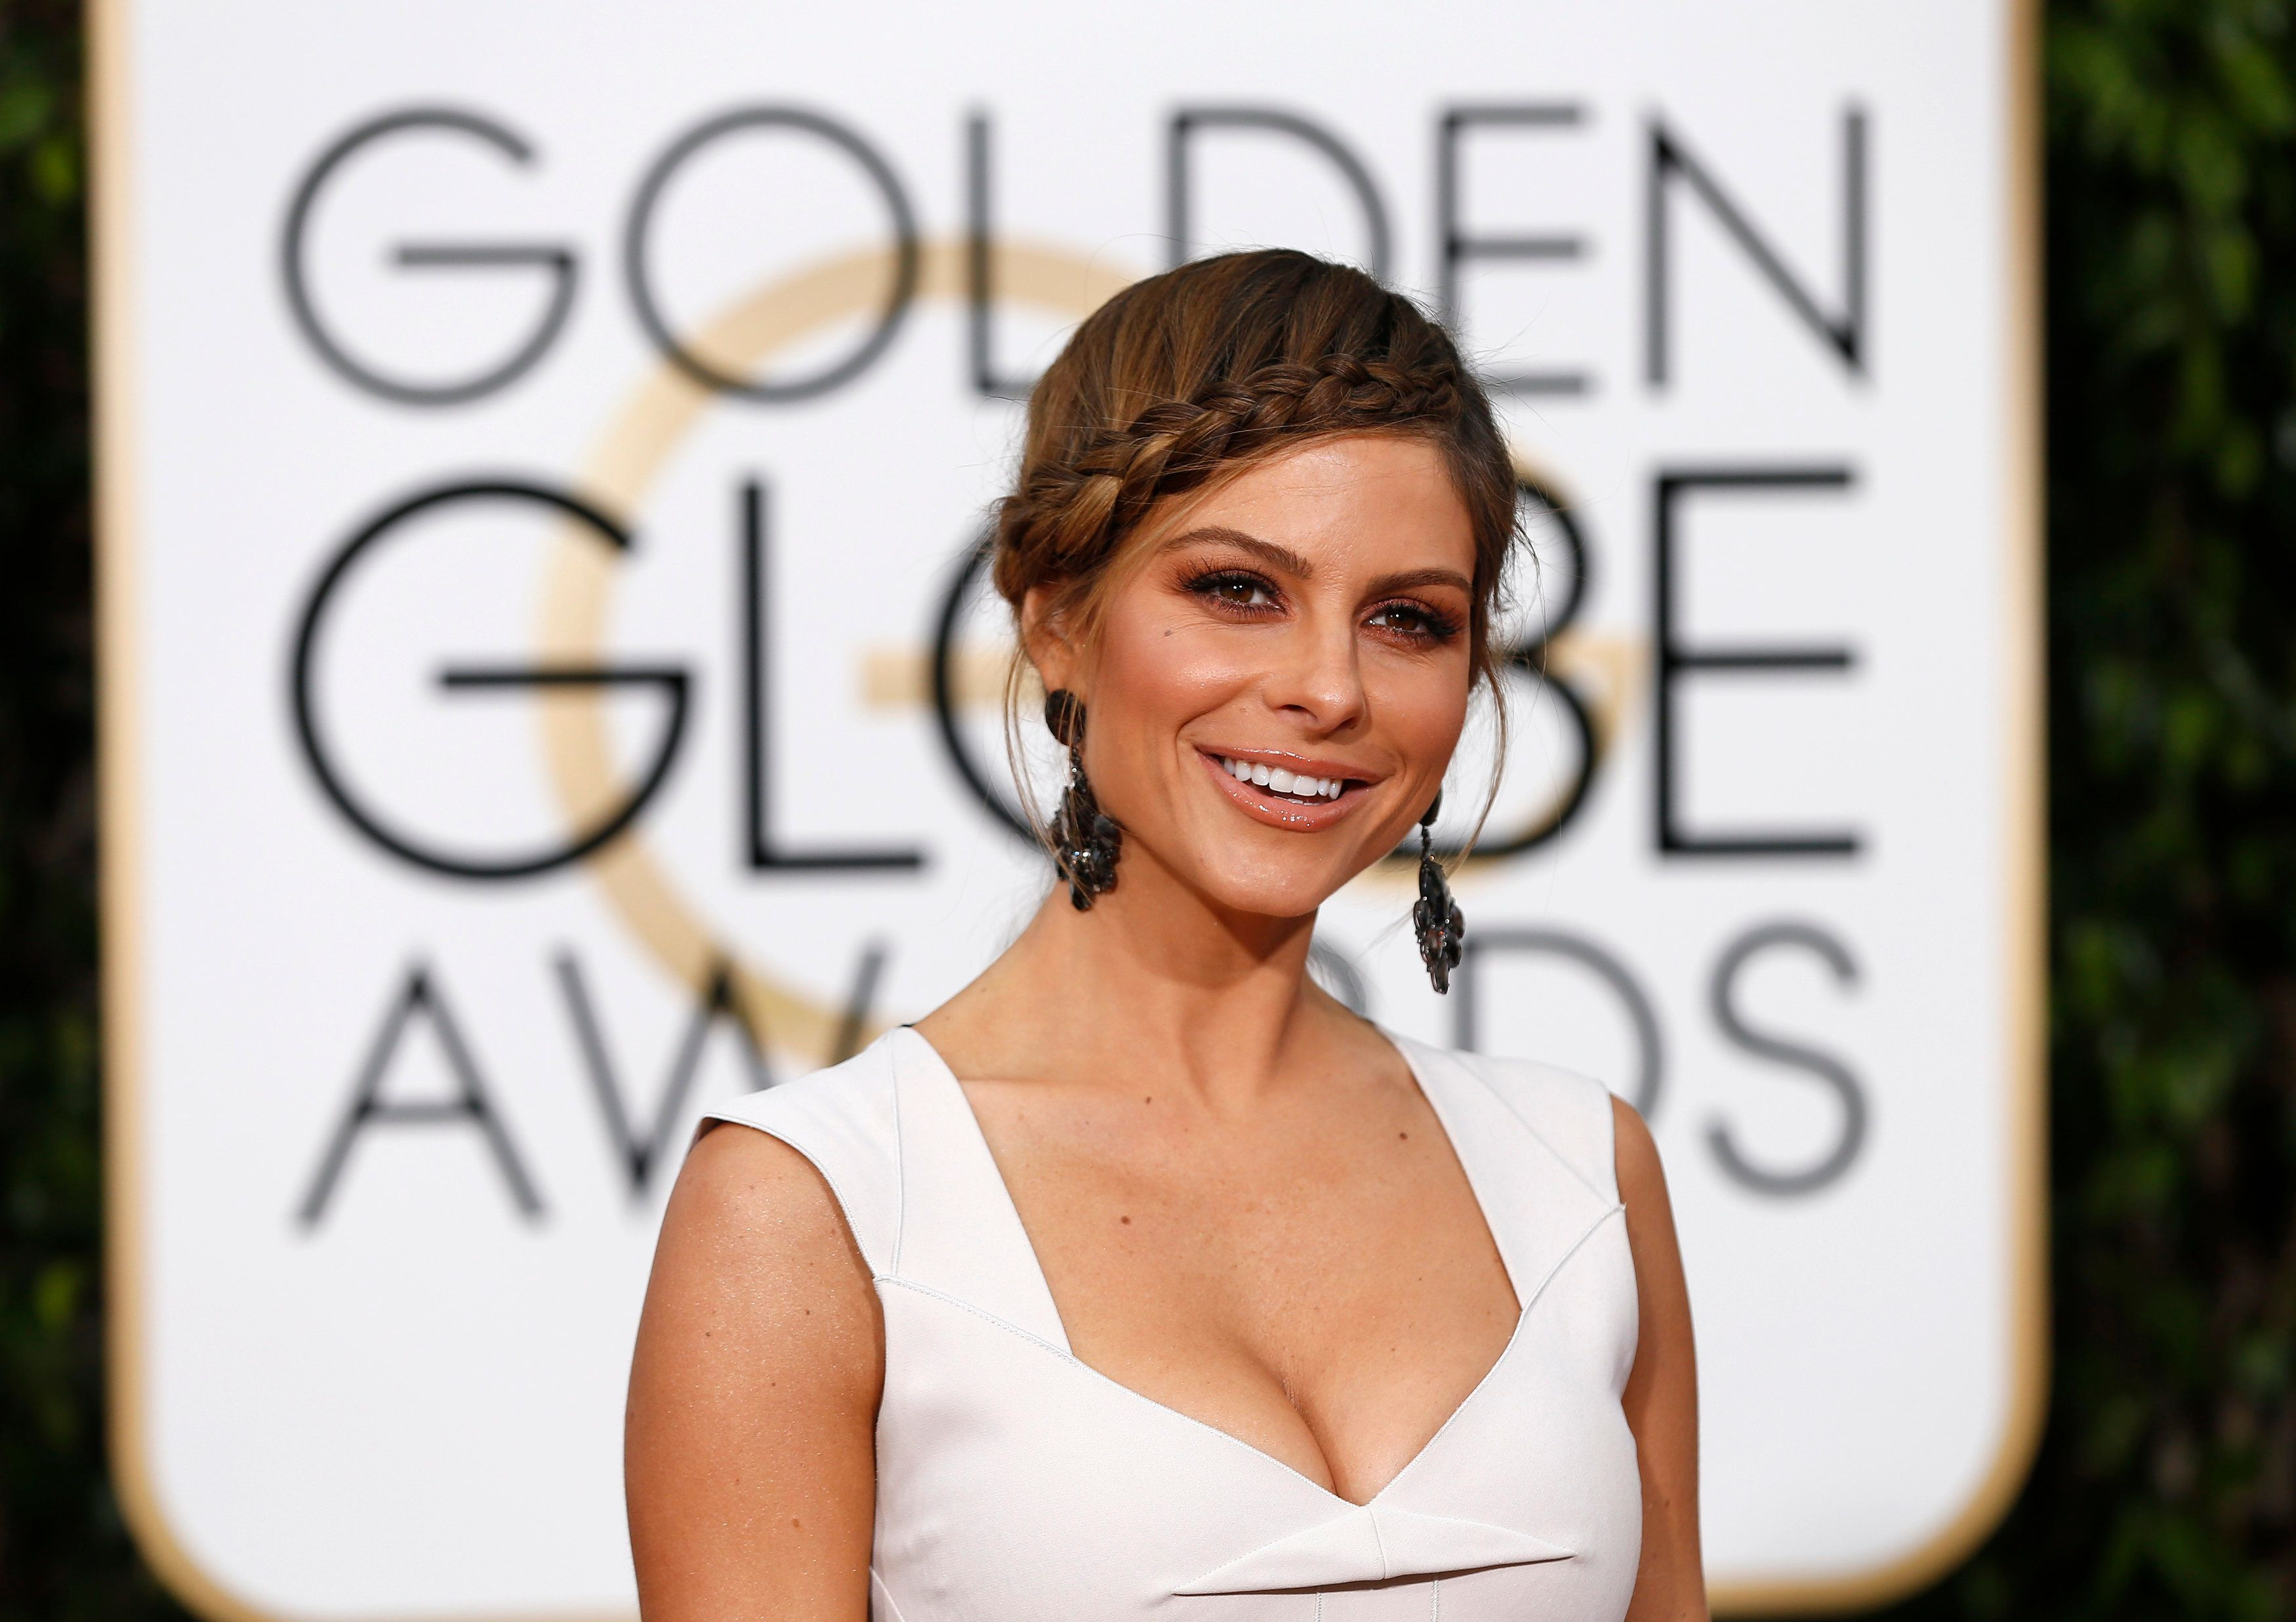 TV personality Maria Menounos arrives at the 73rd Golden Globe Awards in Beverly Hills, California January 10, 2016.  REUTERS/Mario Anzuoni